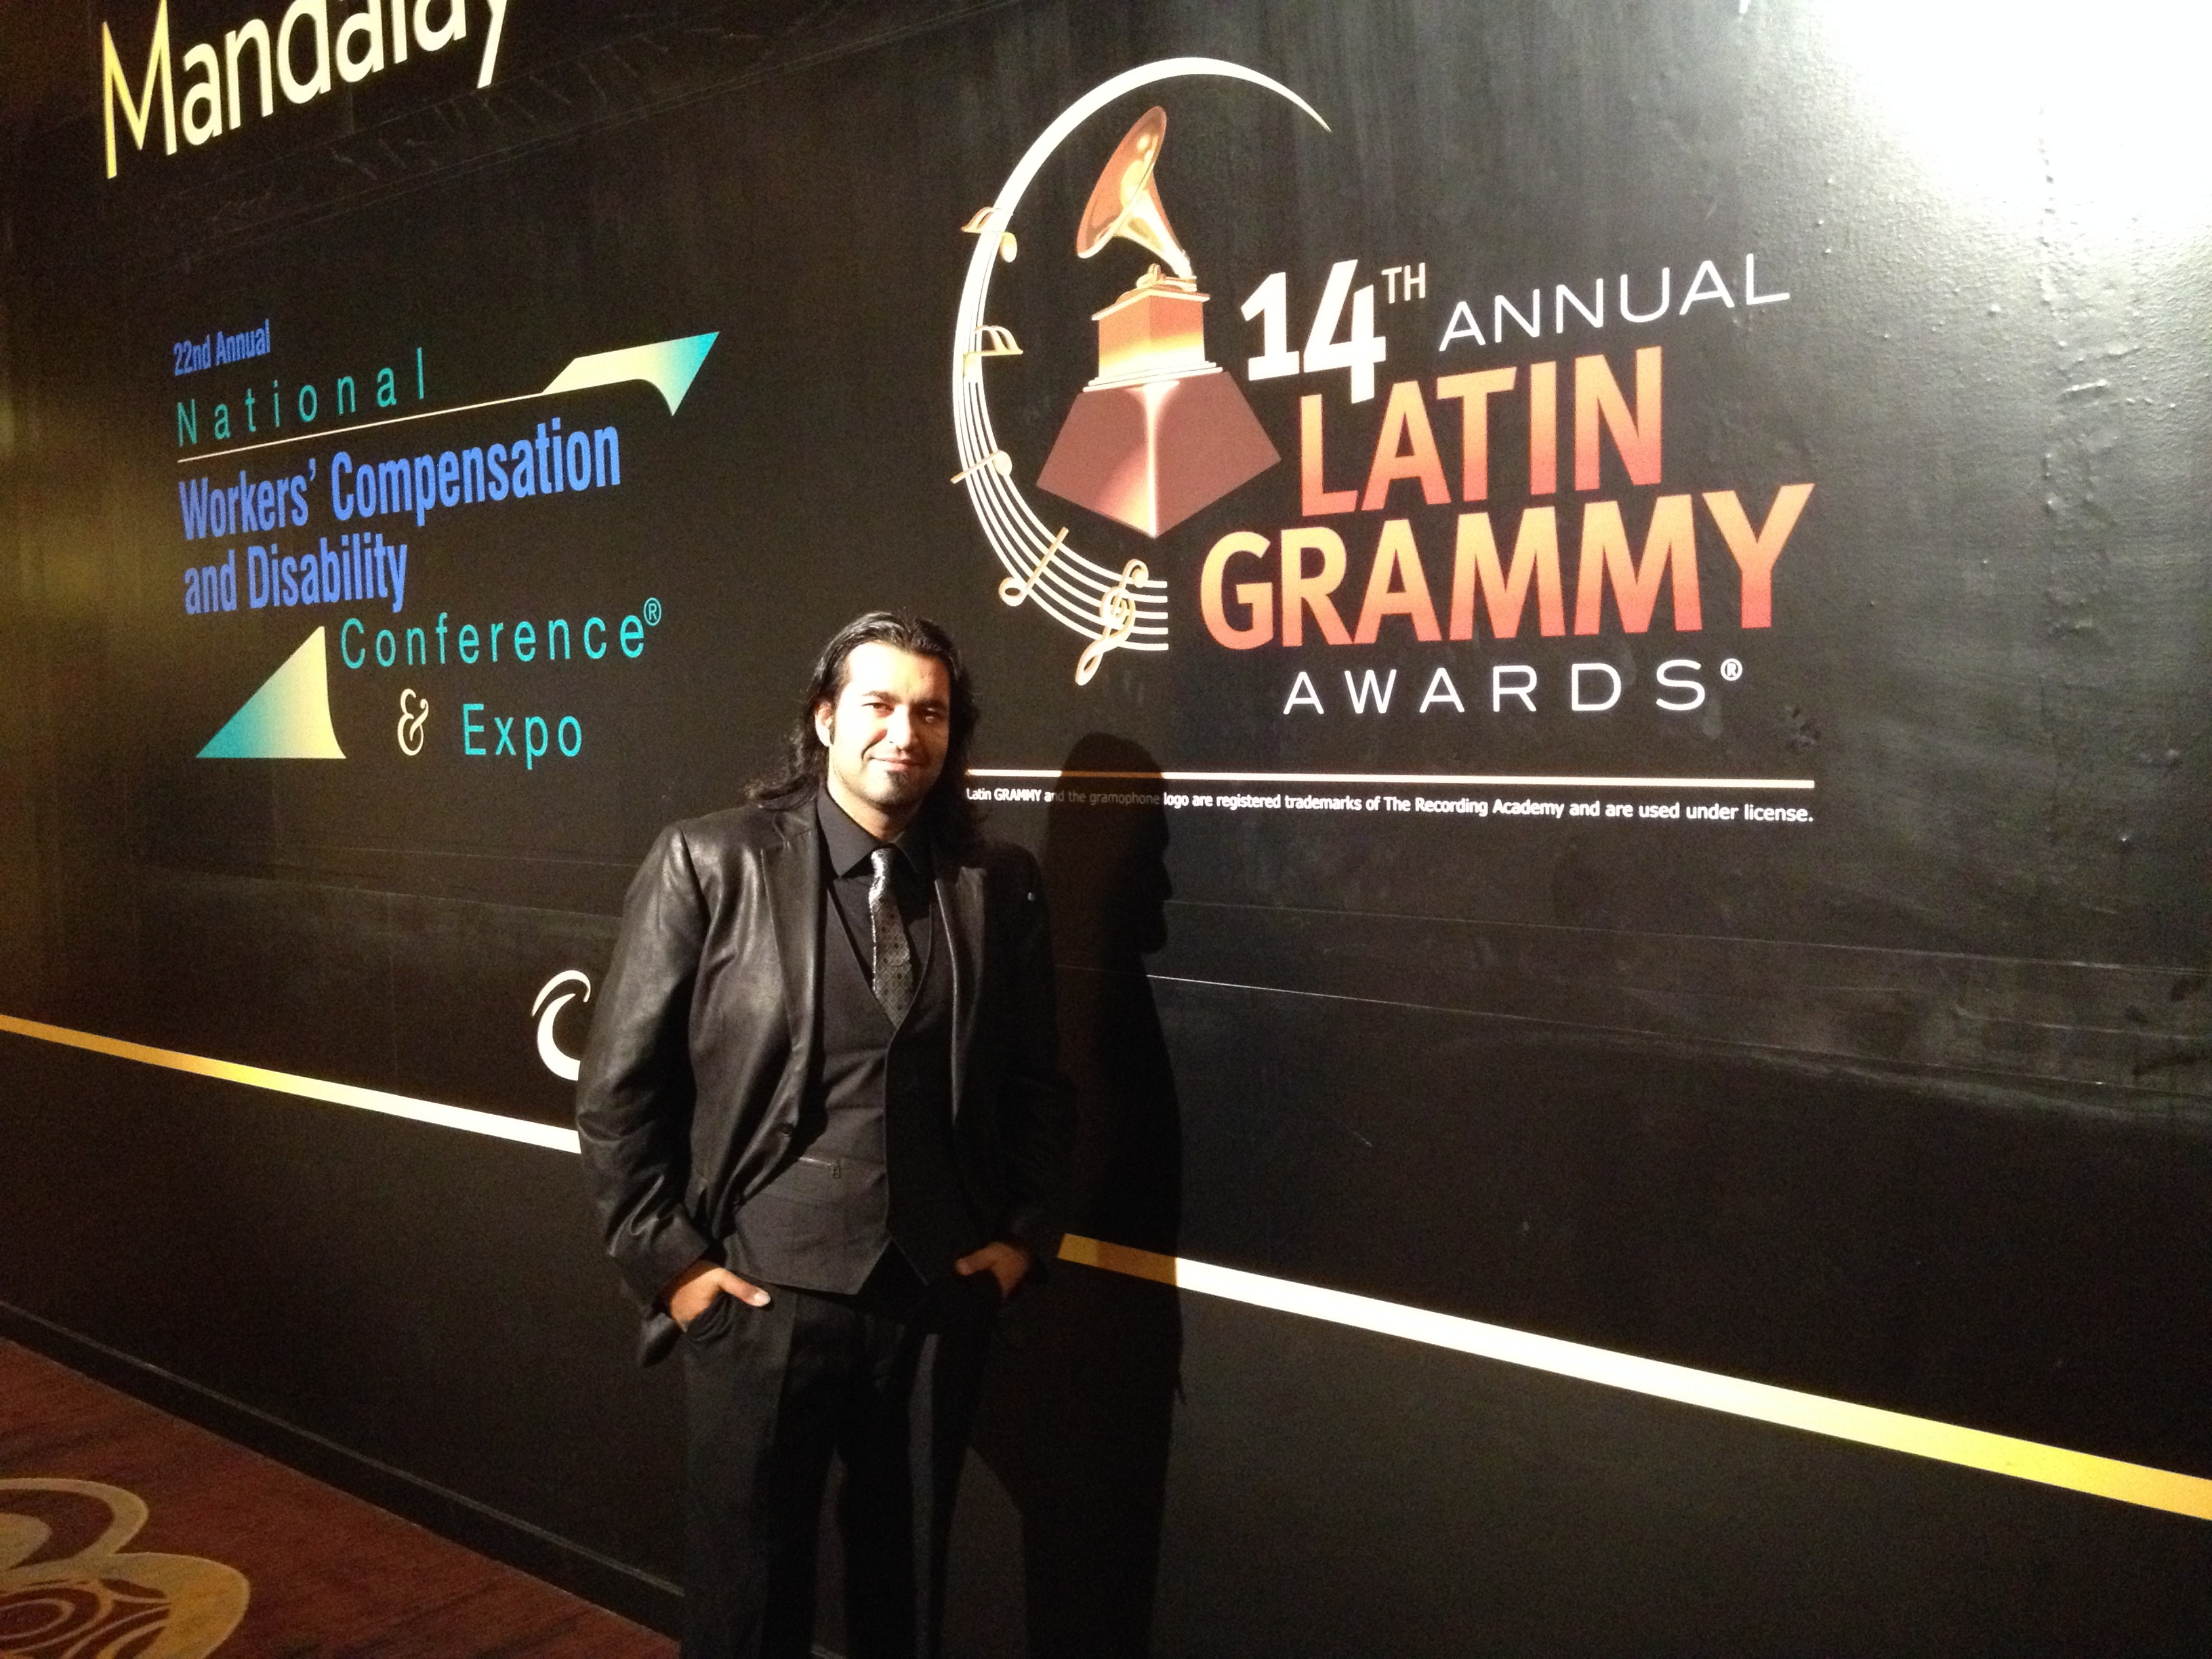 14th Annual Latin Grammy